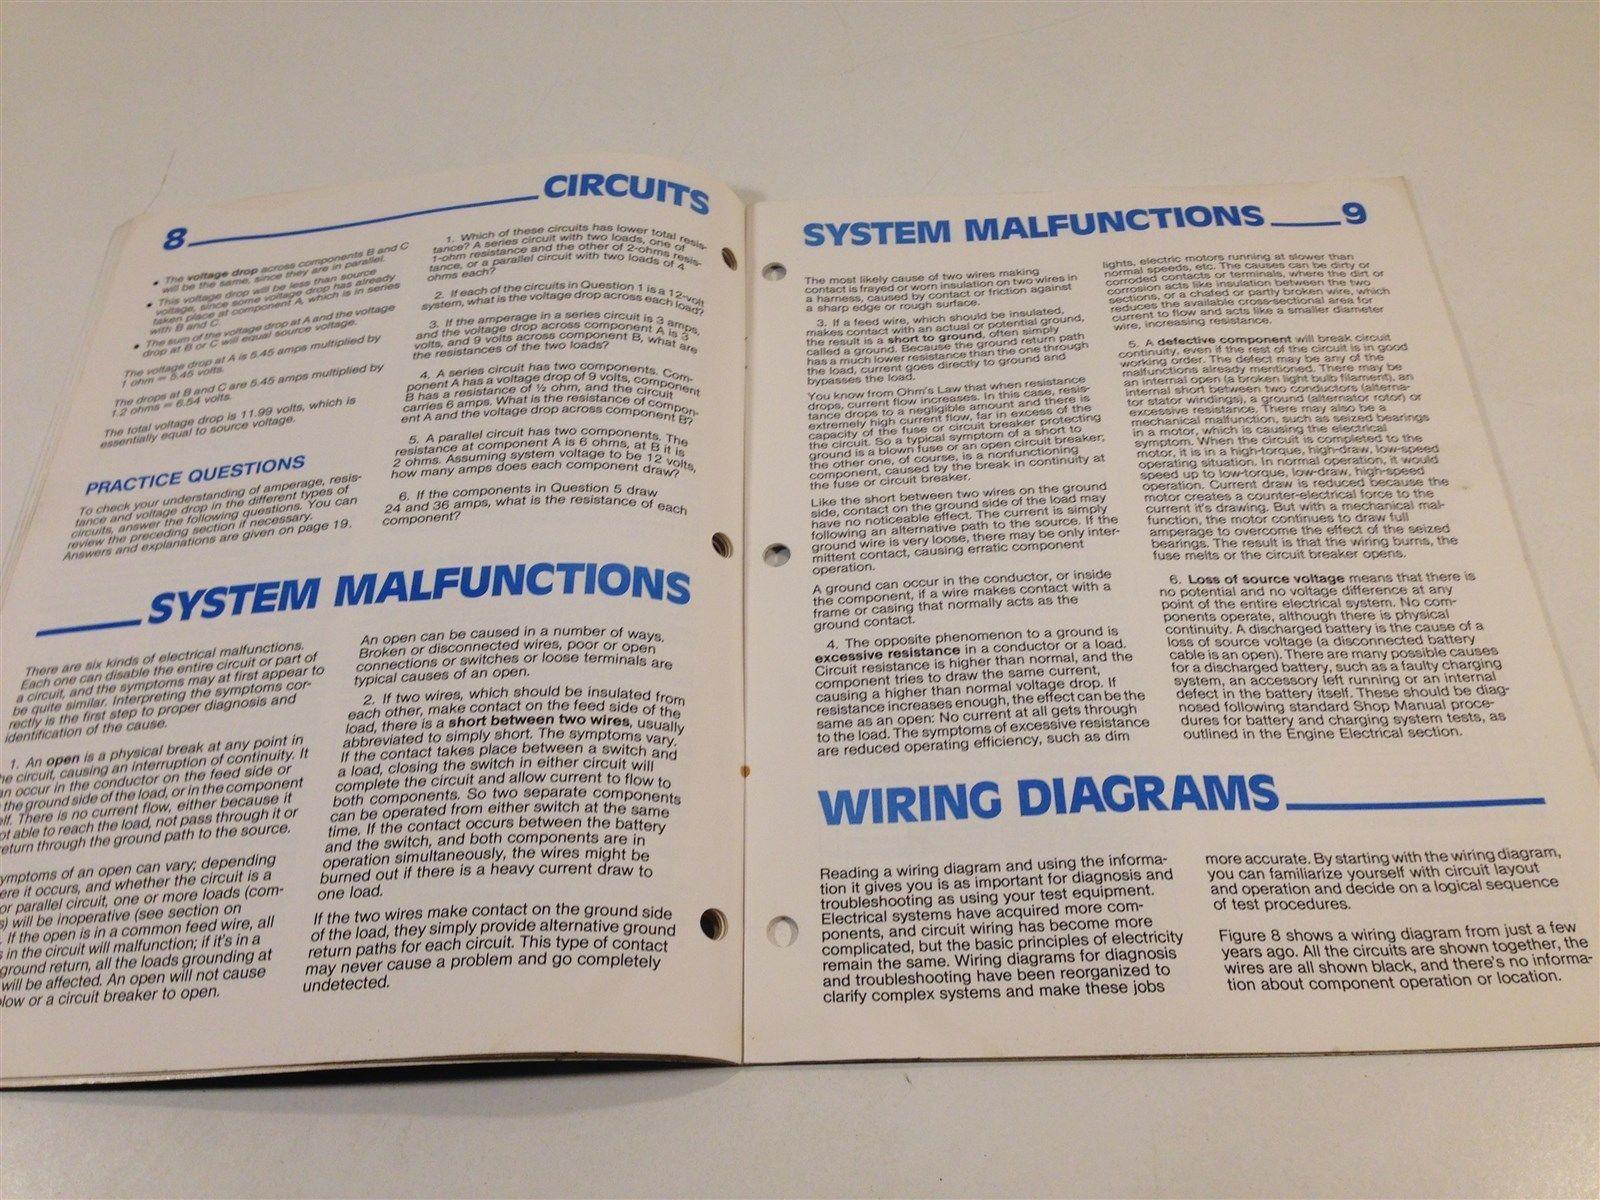 1982 Chevrolet Pro Tech Electrical Diagnosis Service Procedures Blue Book